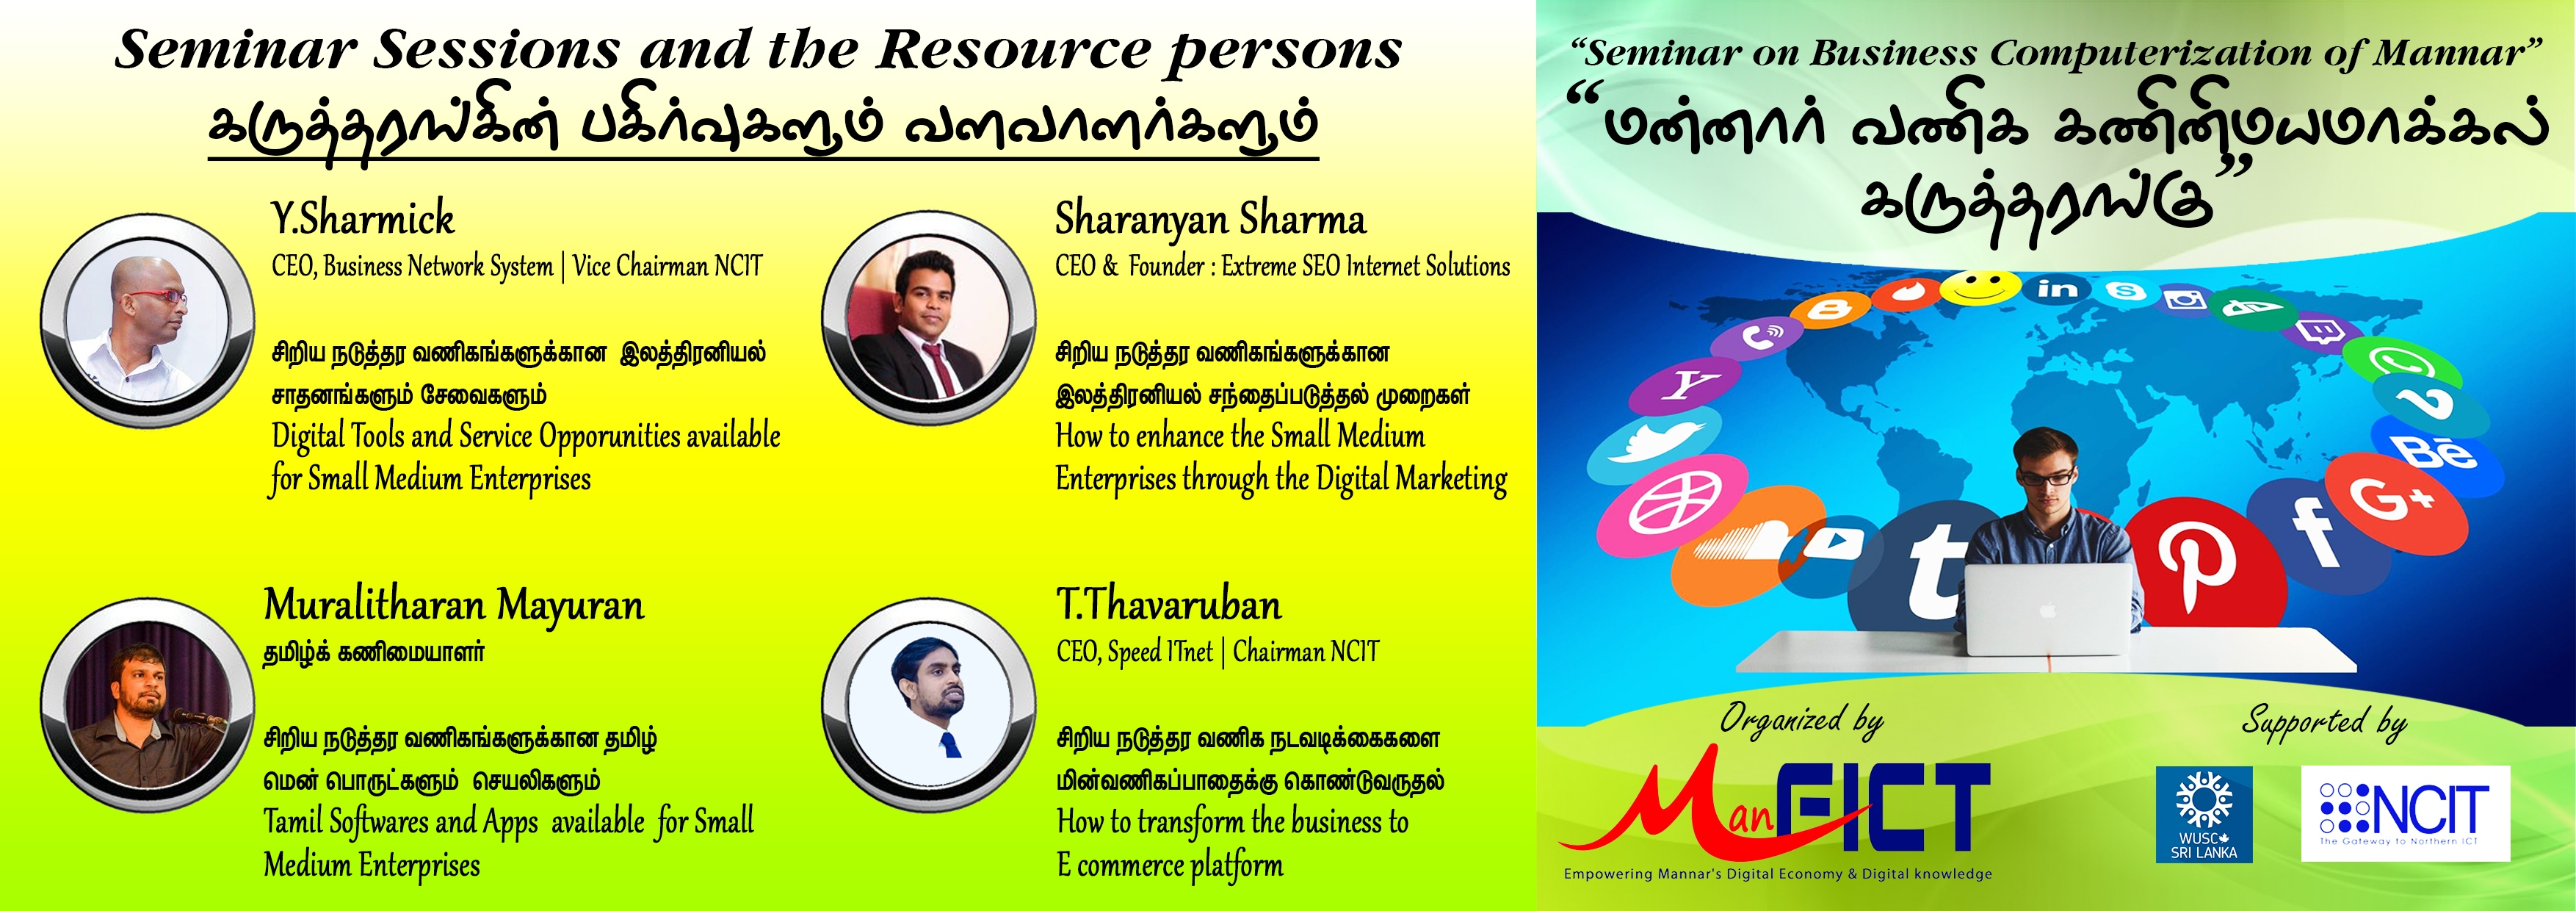 Seminar on Computerization of  Business  in Mannar